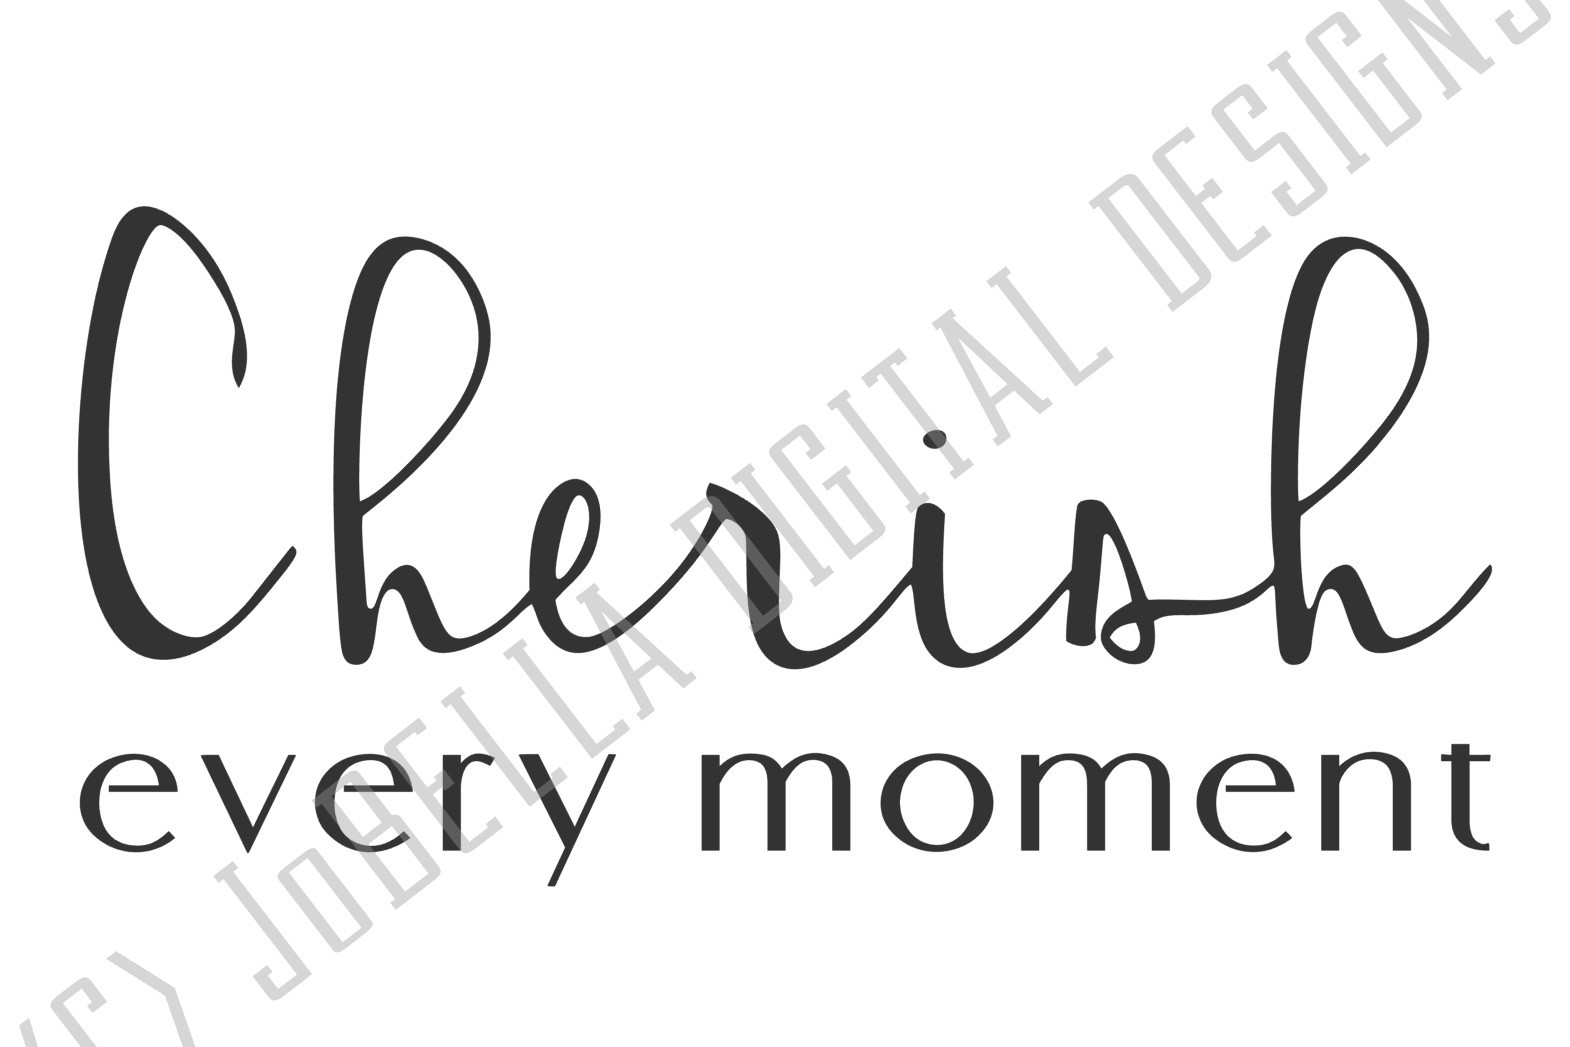 Cherish Every Moment SVG and Printable Farmhouse Design example image 2